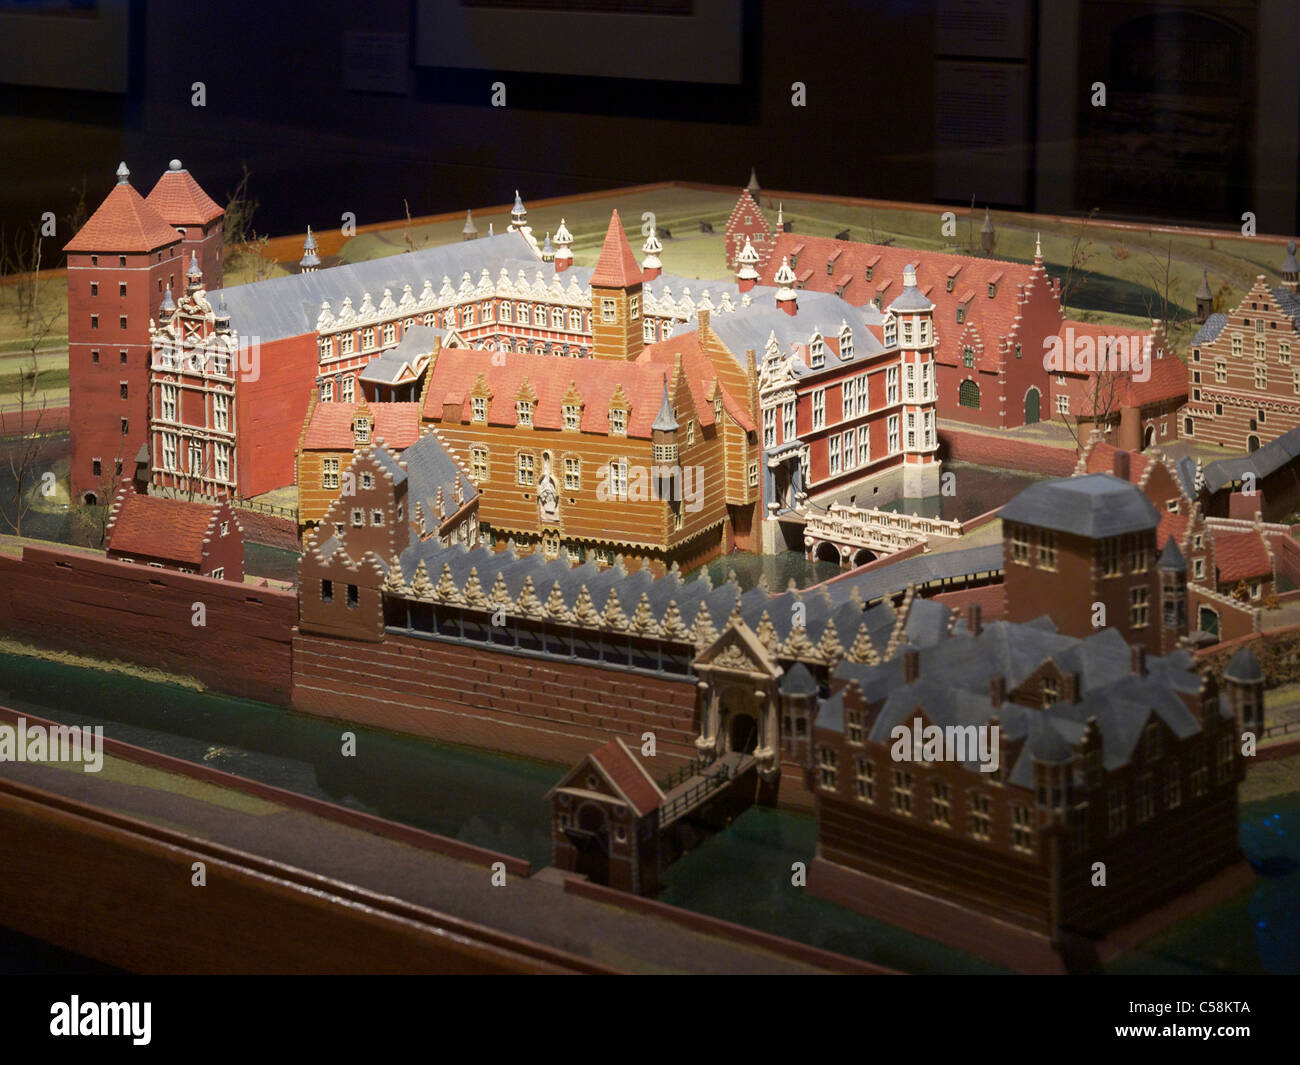 Scale model of the castle of Breda as it looked during the 80-year war period. - Stock Image